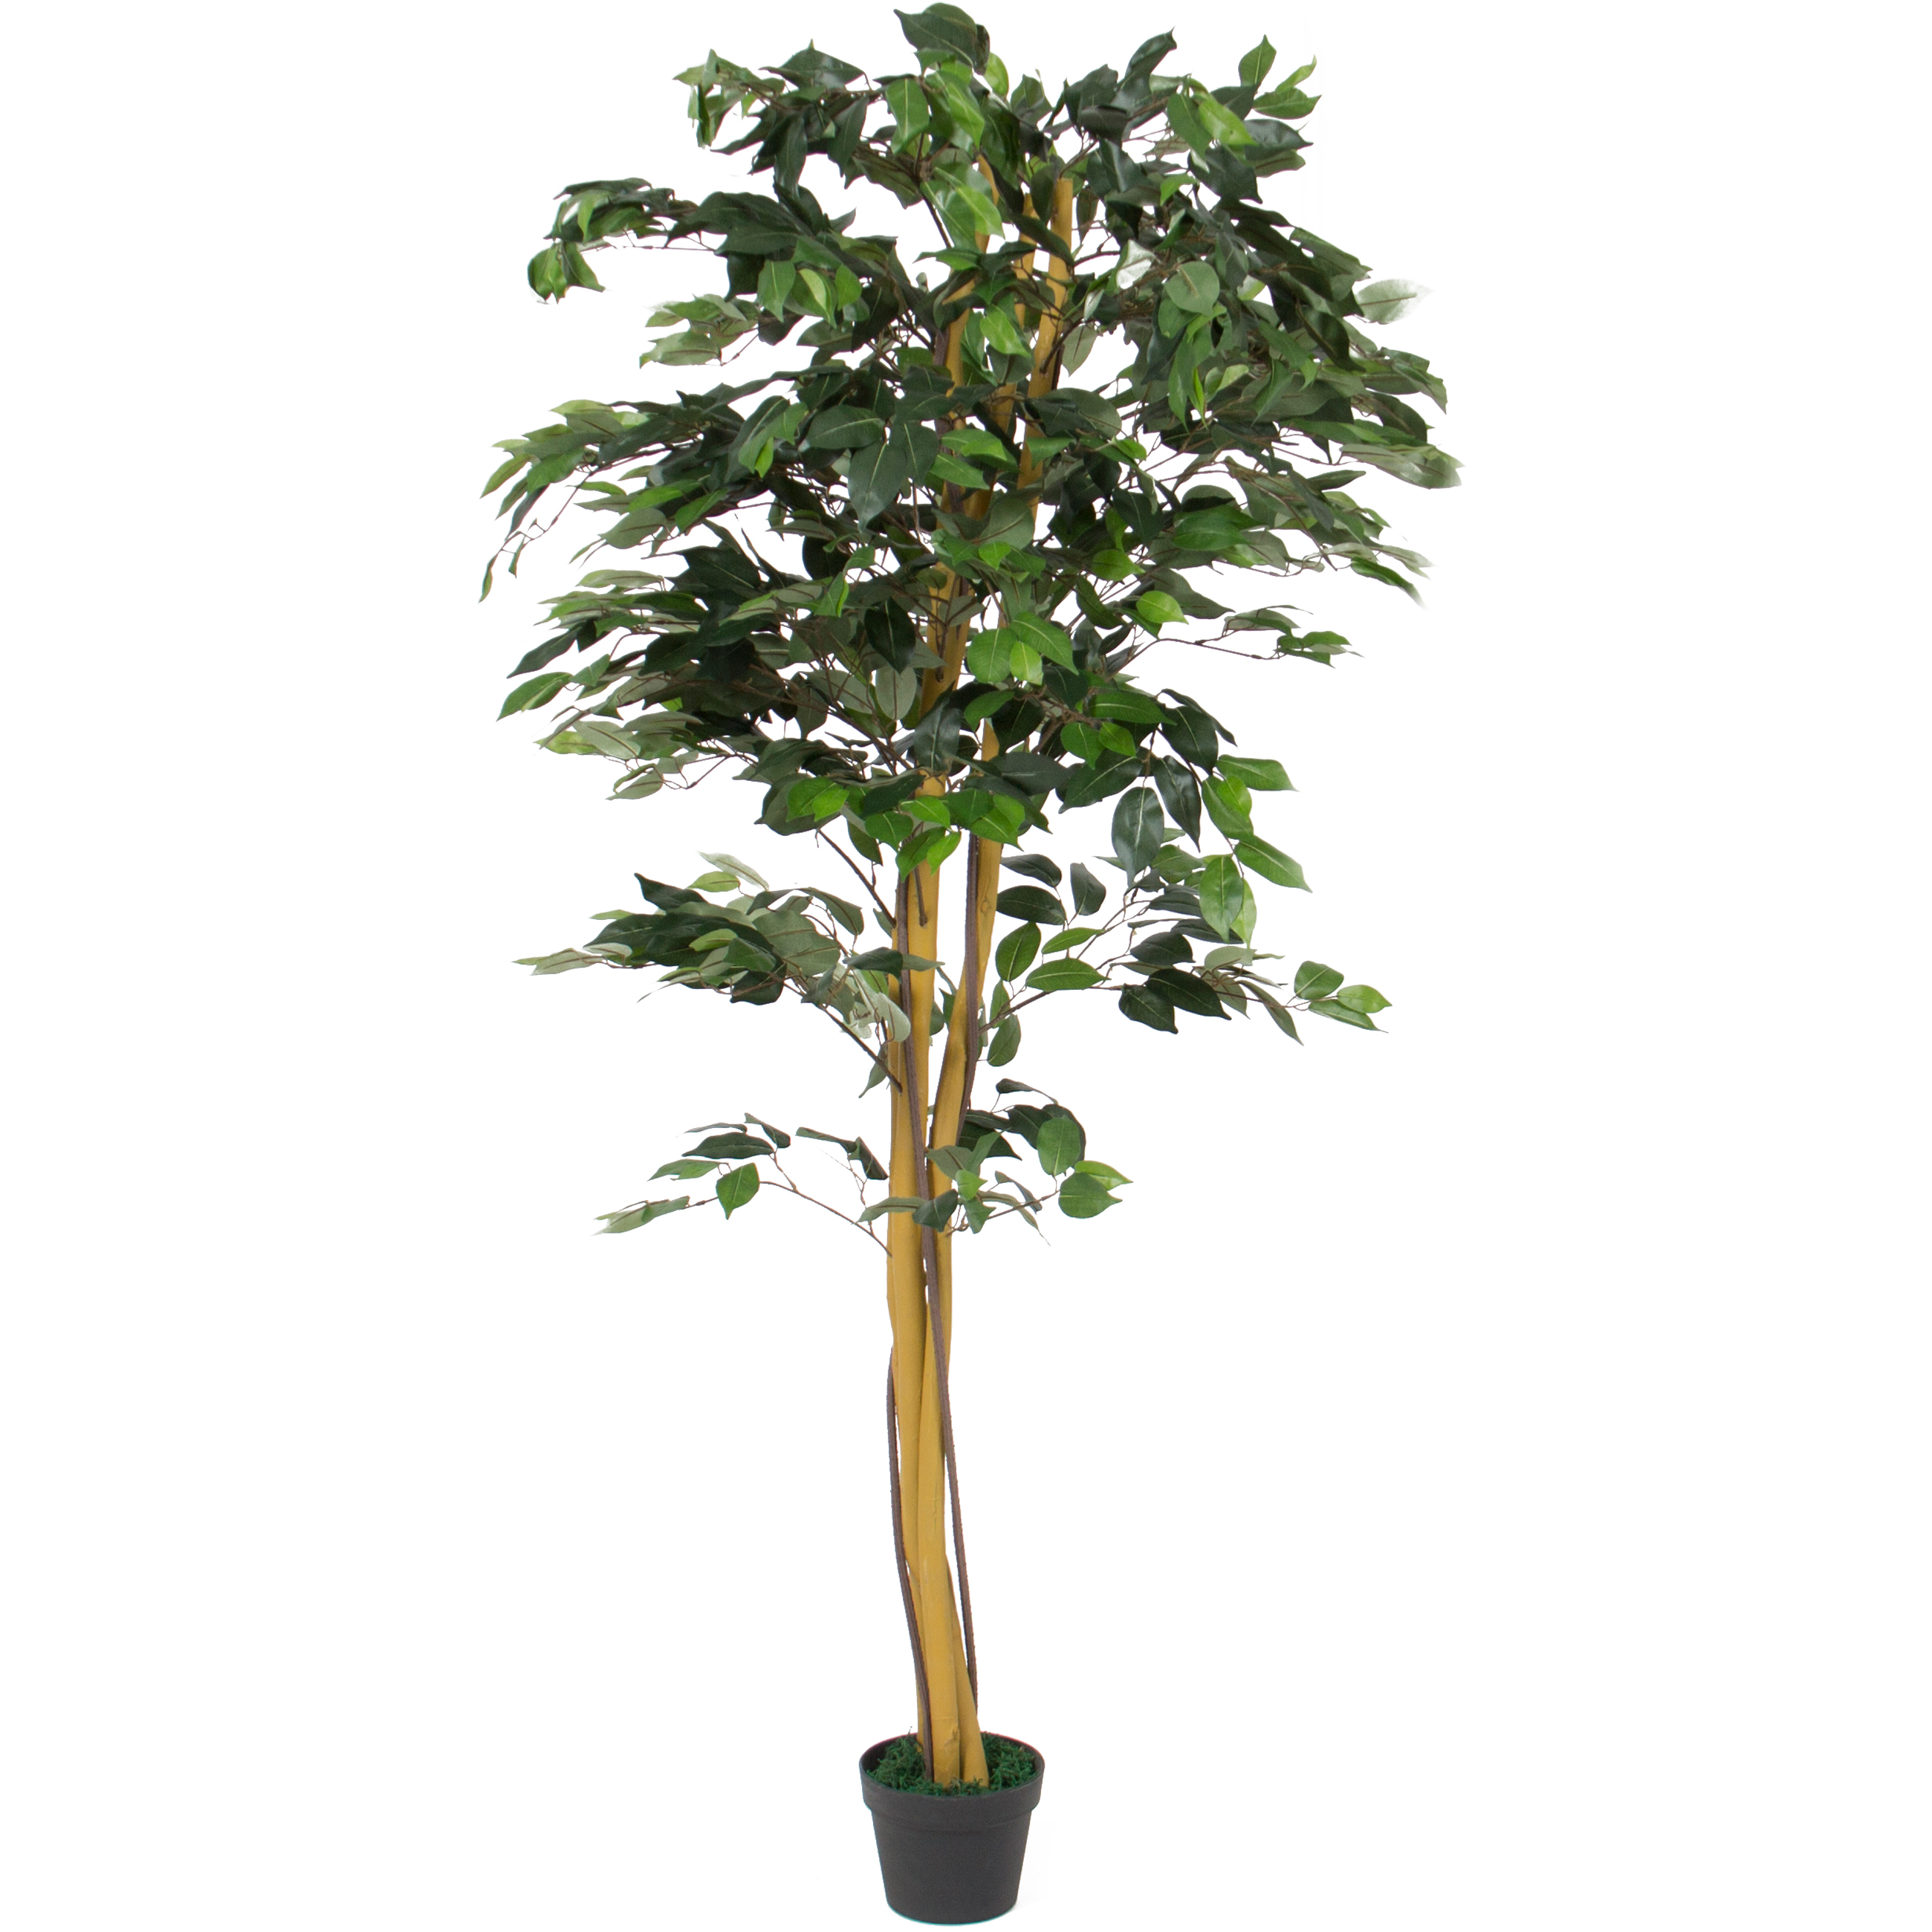 Best Choice Products 6 FT Decorative Artificial Tree Ficus Plant